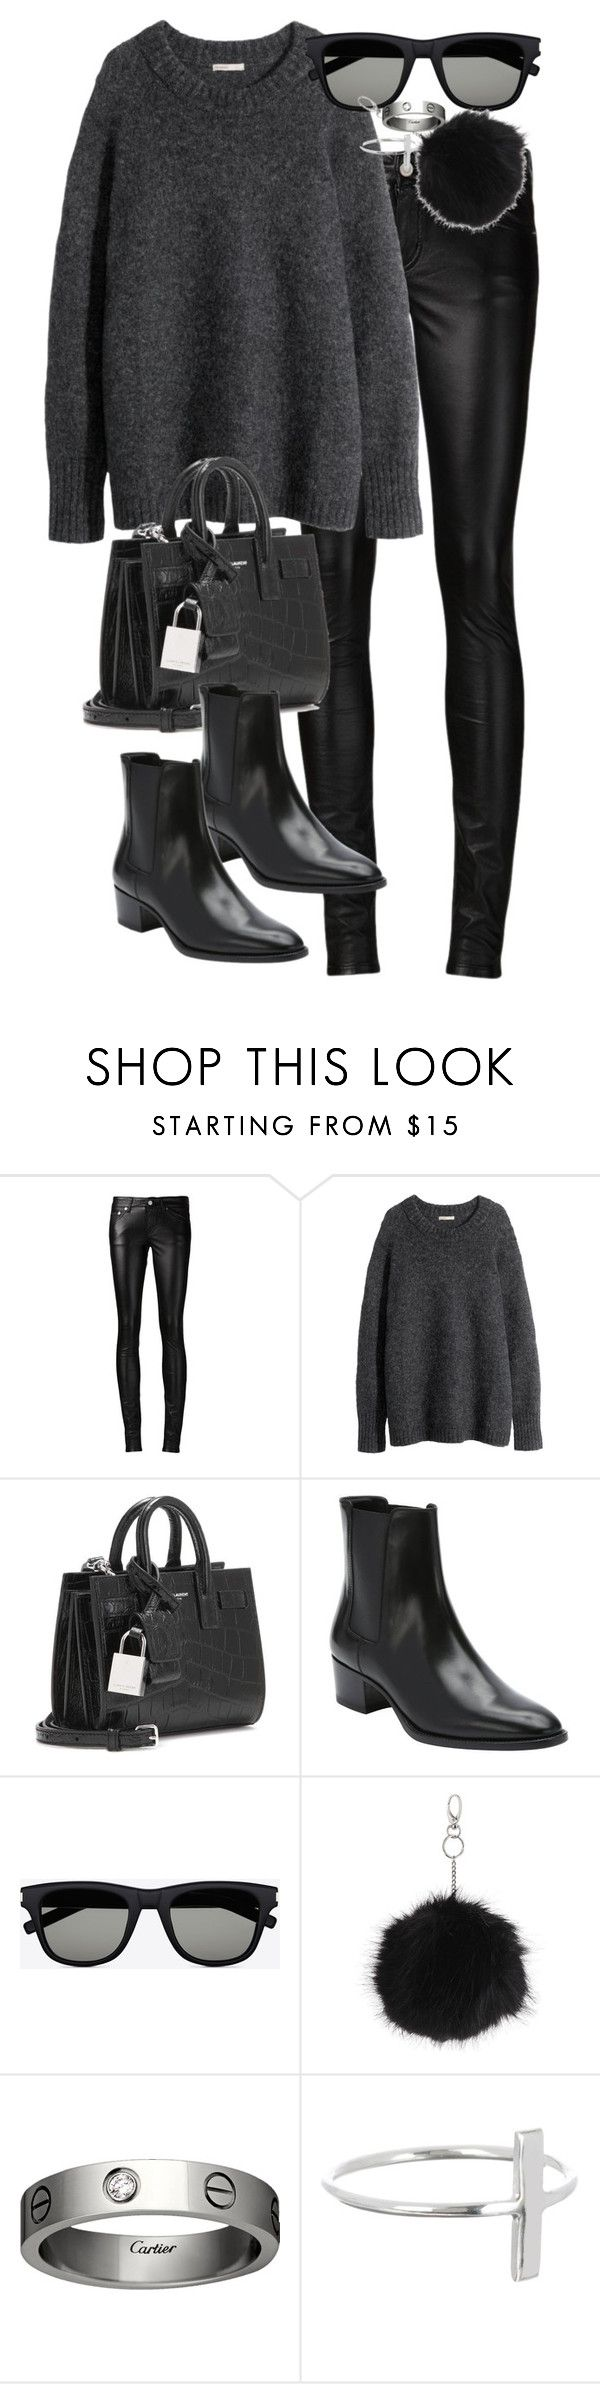 """""""Untitled #2945"""" by angieswardrobe ❤ liked on Polyvore featuring Yves Saint Laurent, H&M, Topshop, Cartier and 32.4"""